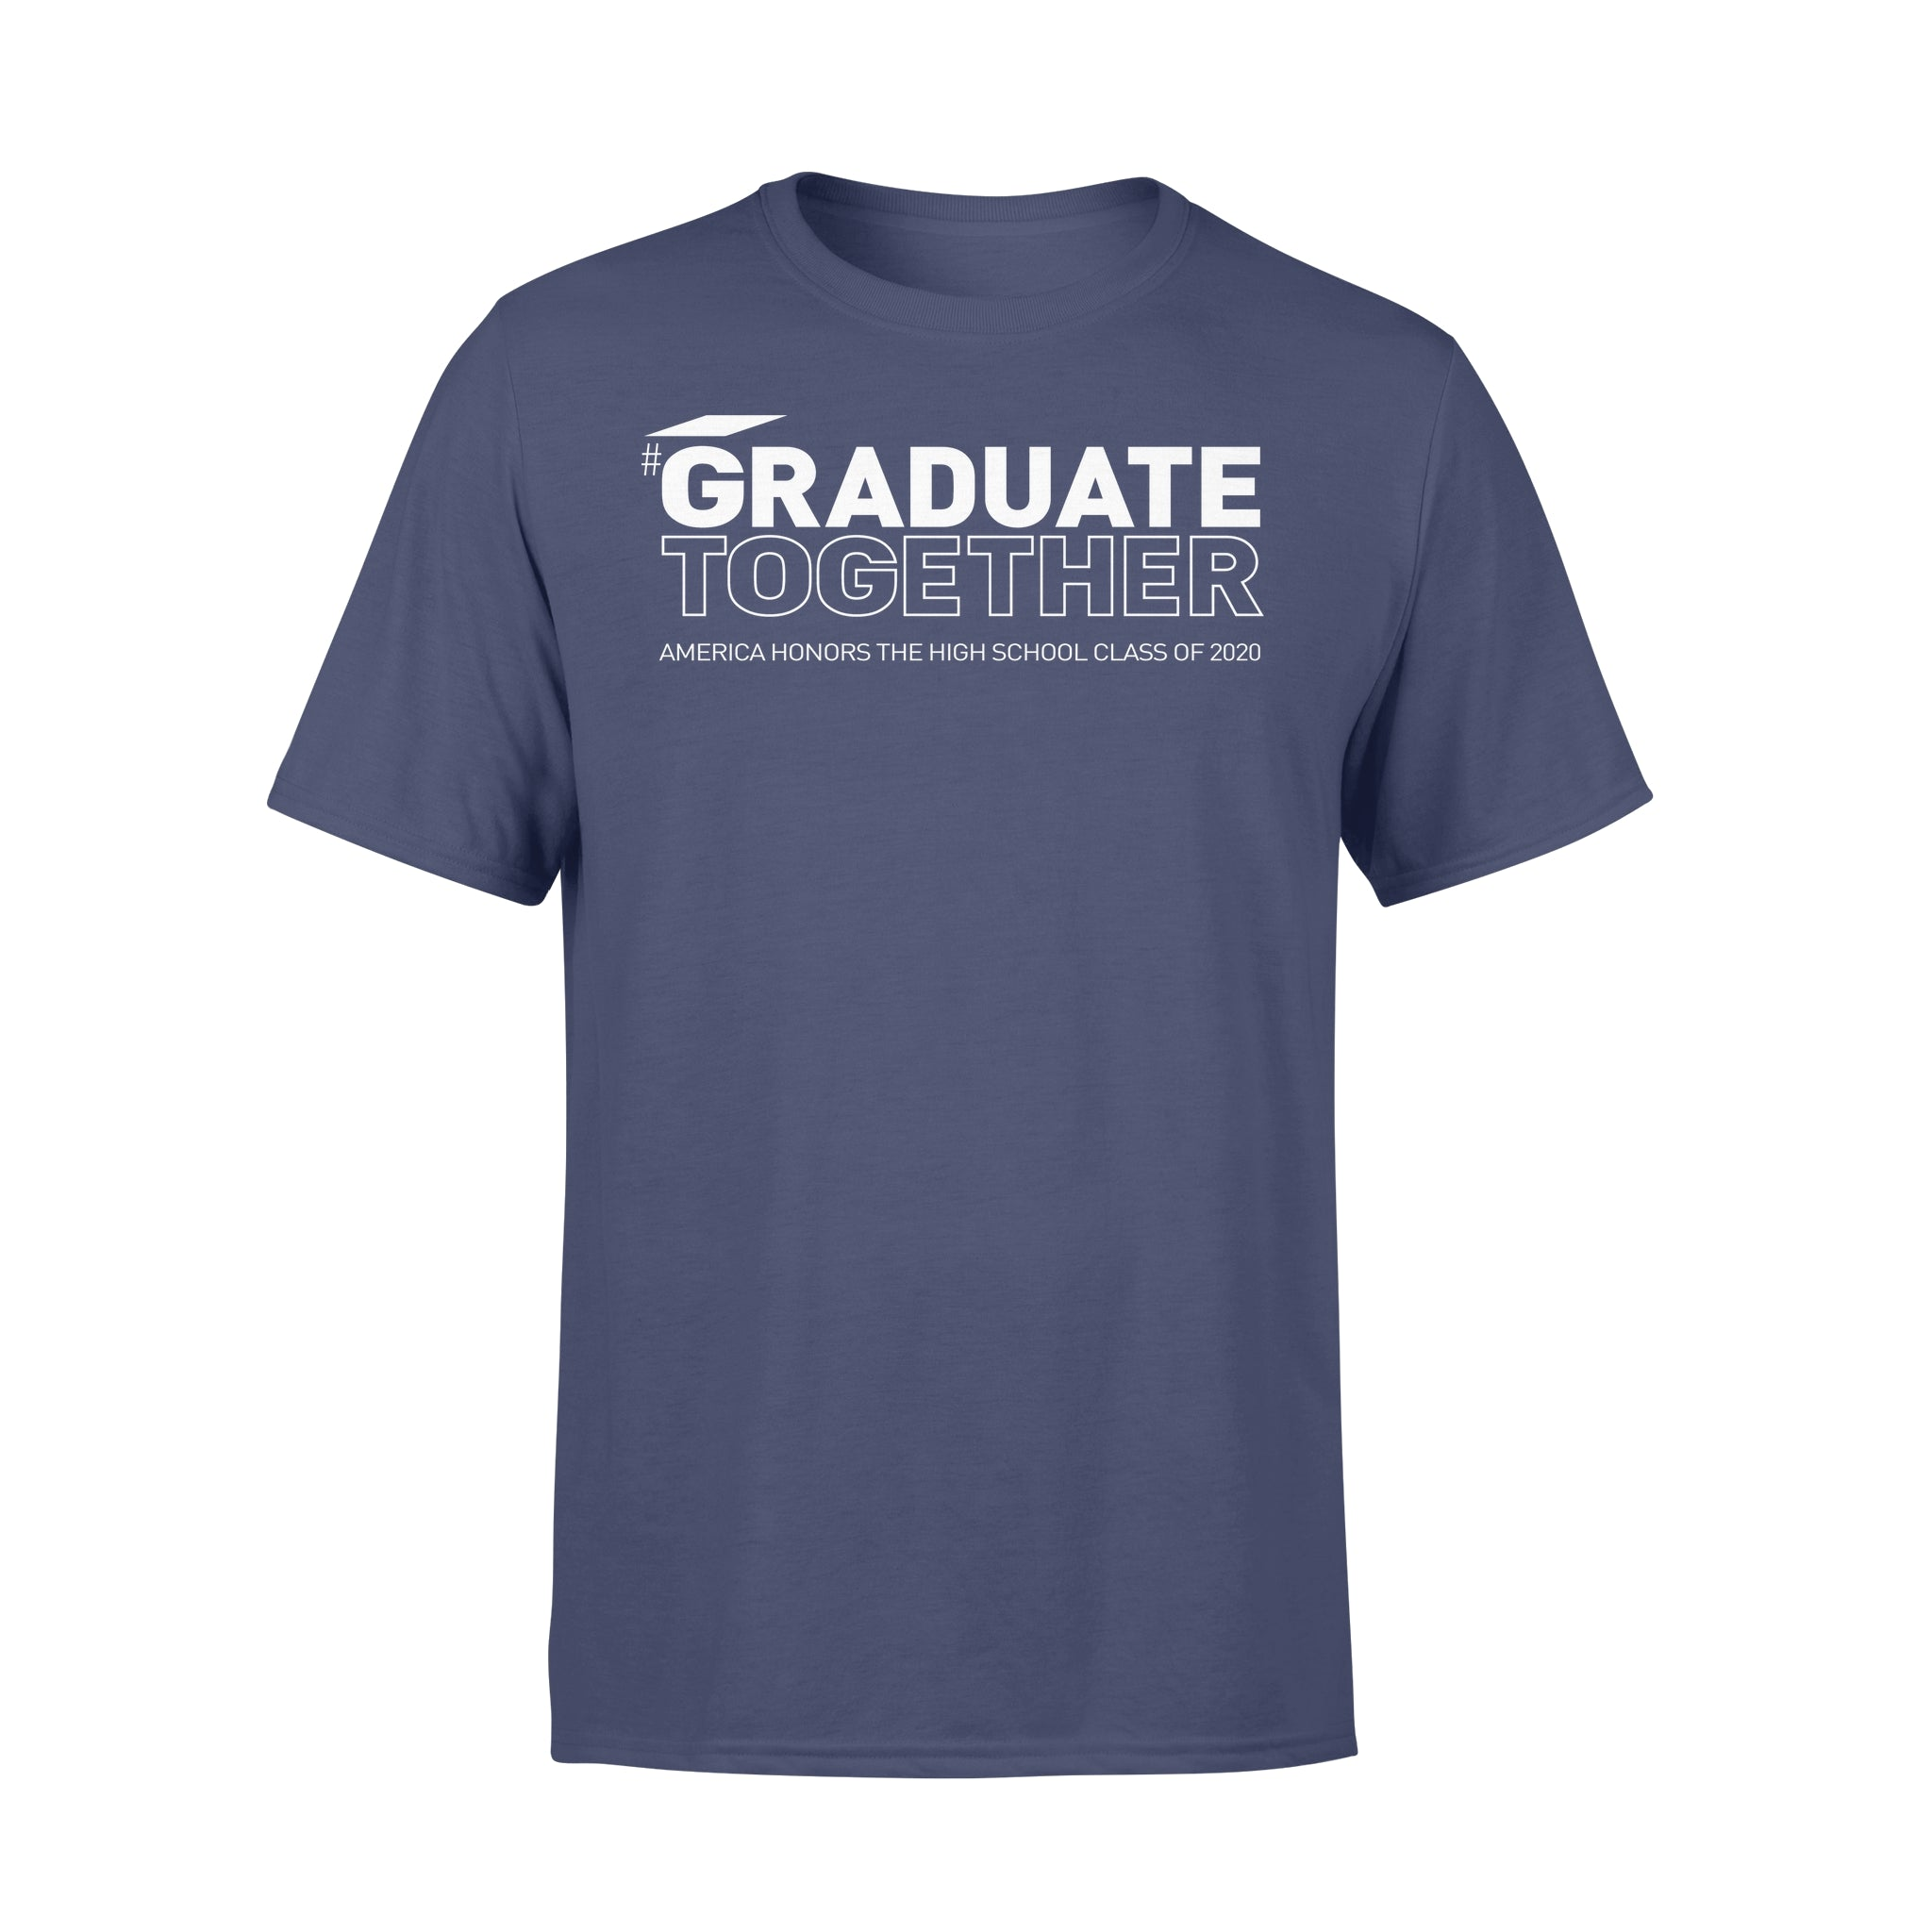 Graduate Together America Honor The High School Class Of 2020 T-shirt